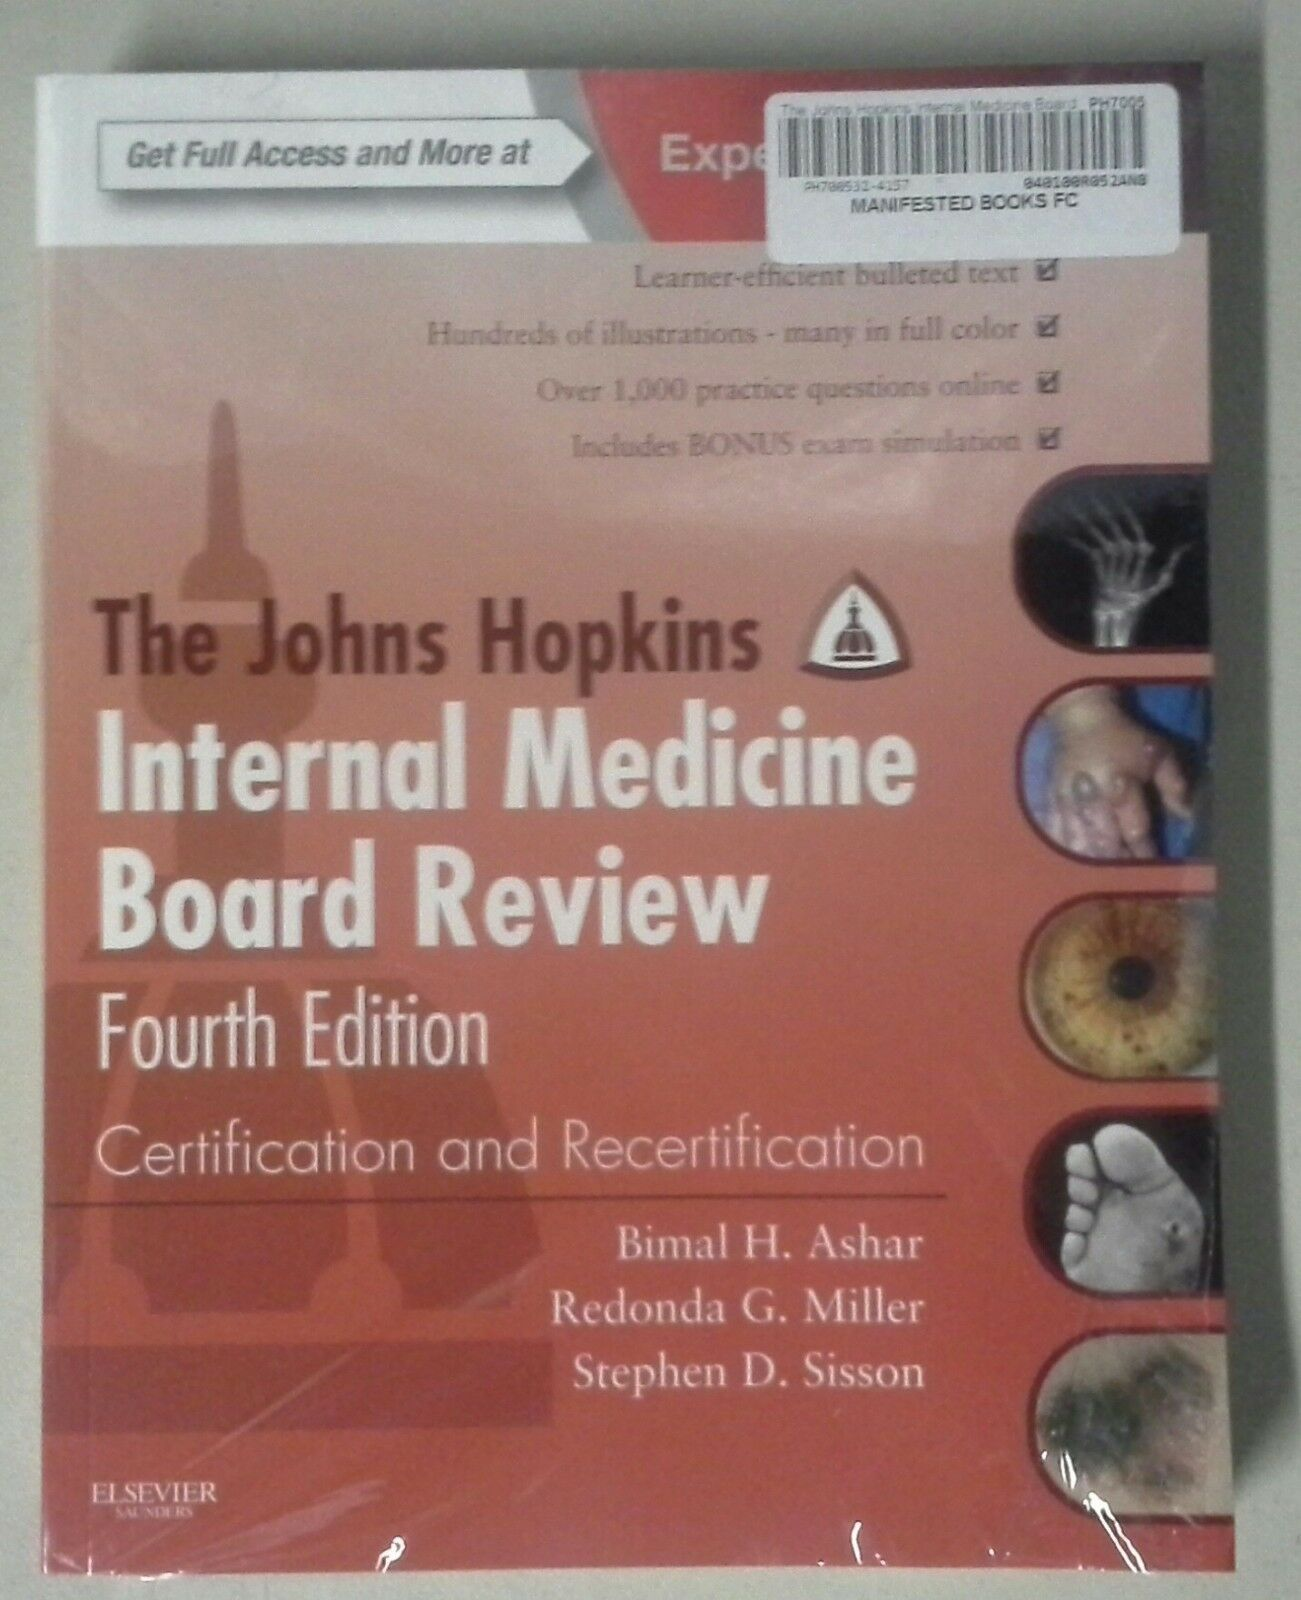 Johns hopkins internal medicine board review certification and picture 1 of 2 xflitez Gallery